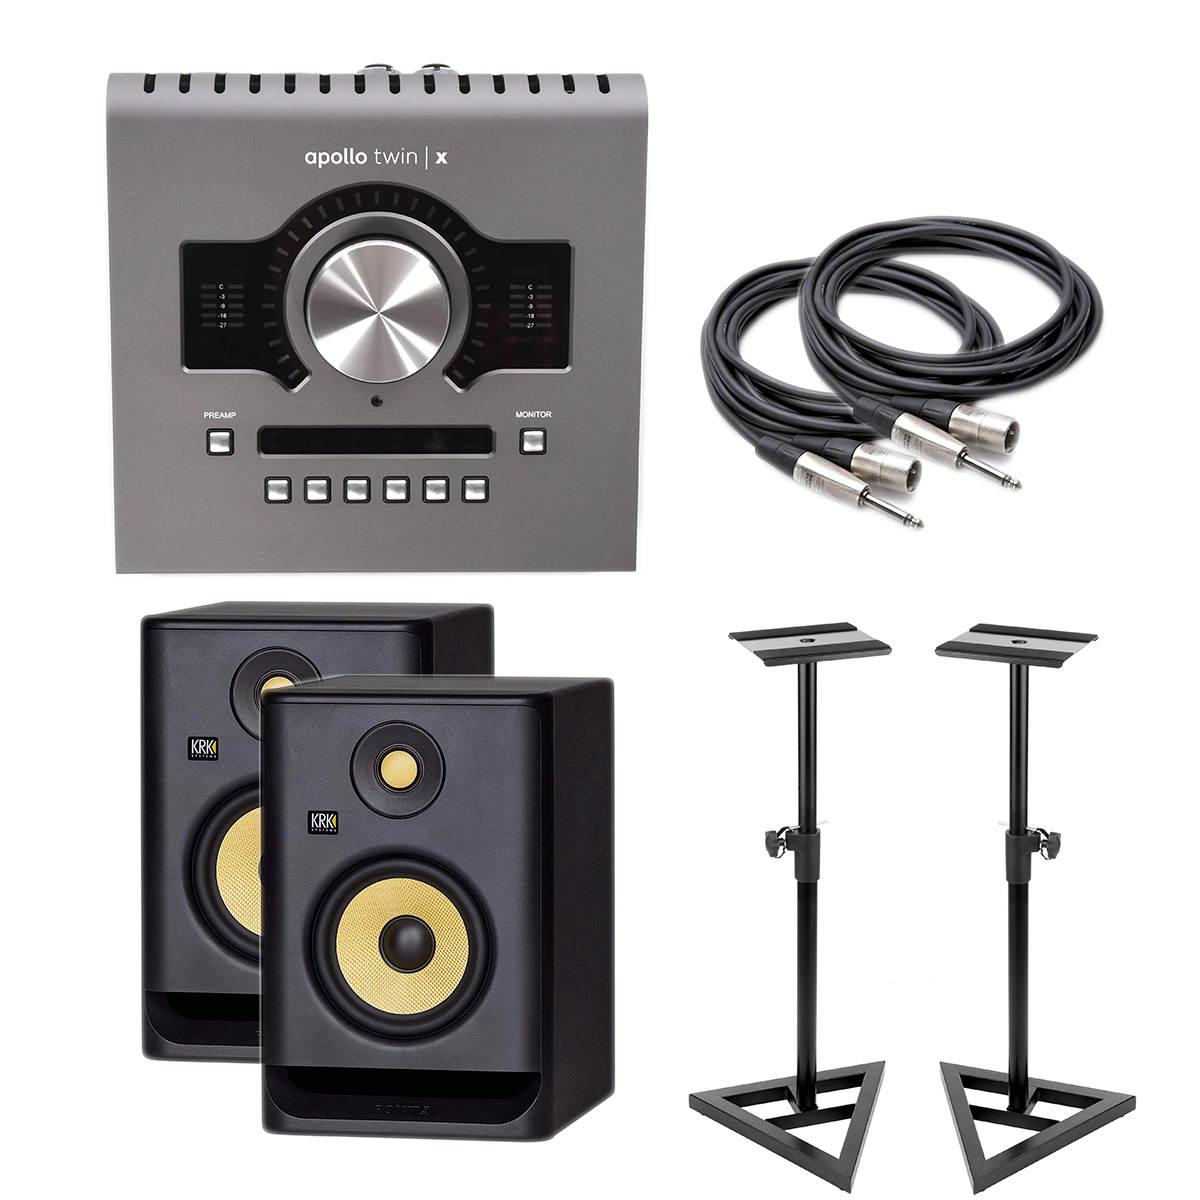 -1 Apollo Twin X (QUAD) - KRK RP5G4 Pair - Monitor Stands - XLR to 1:4 2 - $1499.99